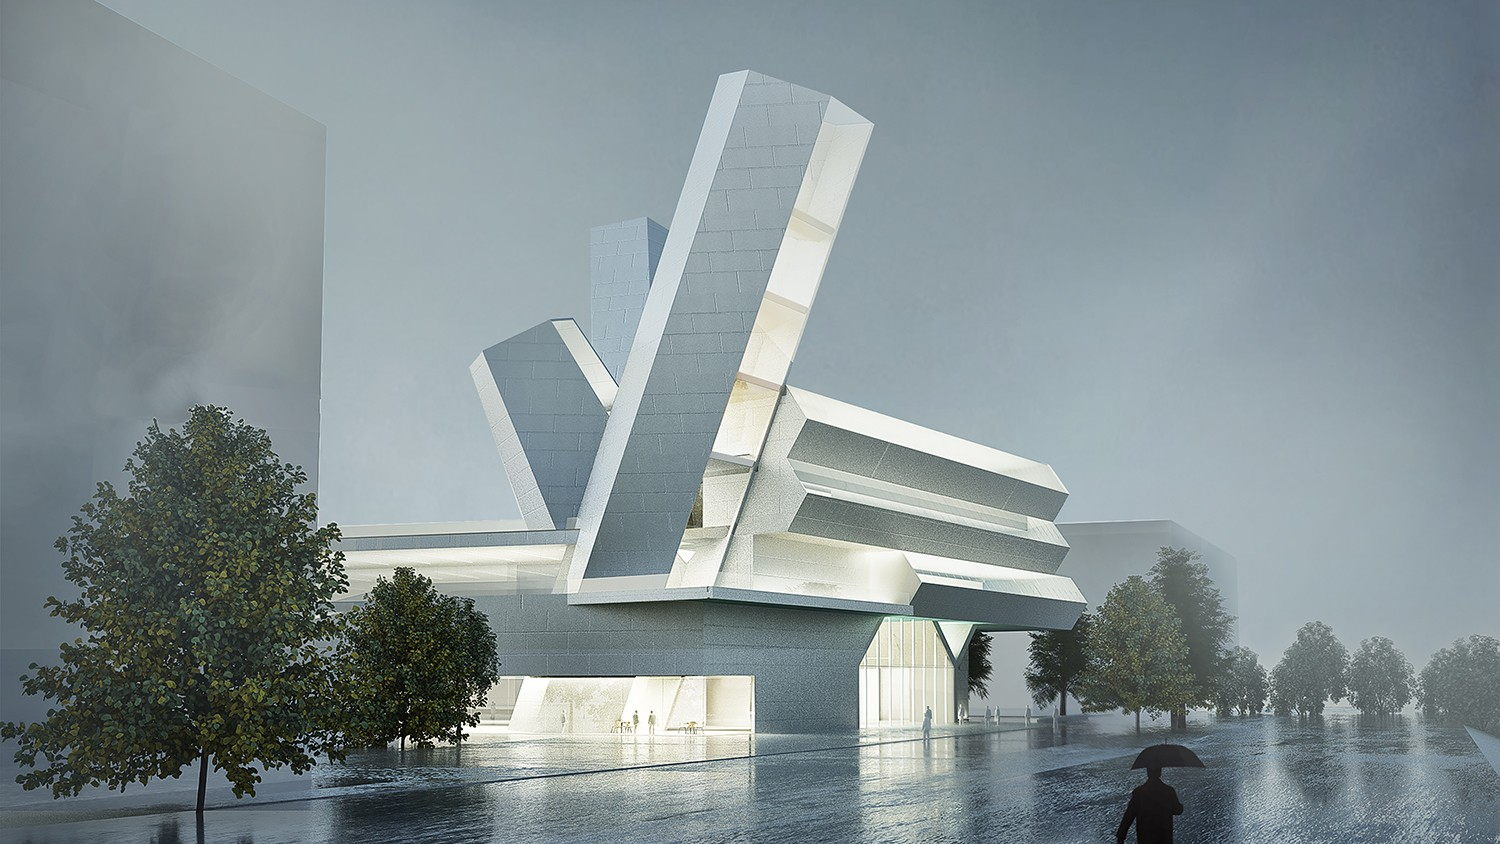 https://stevenholl.sfo2.digitaloceanspaces.com/uploads/projects/project-images/StevenHollArchitects_UCD_NIGHTVIEW0620_WH.jpg